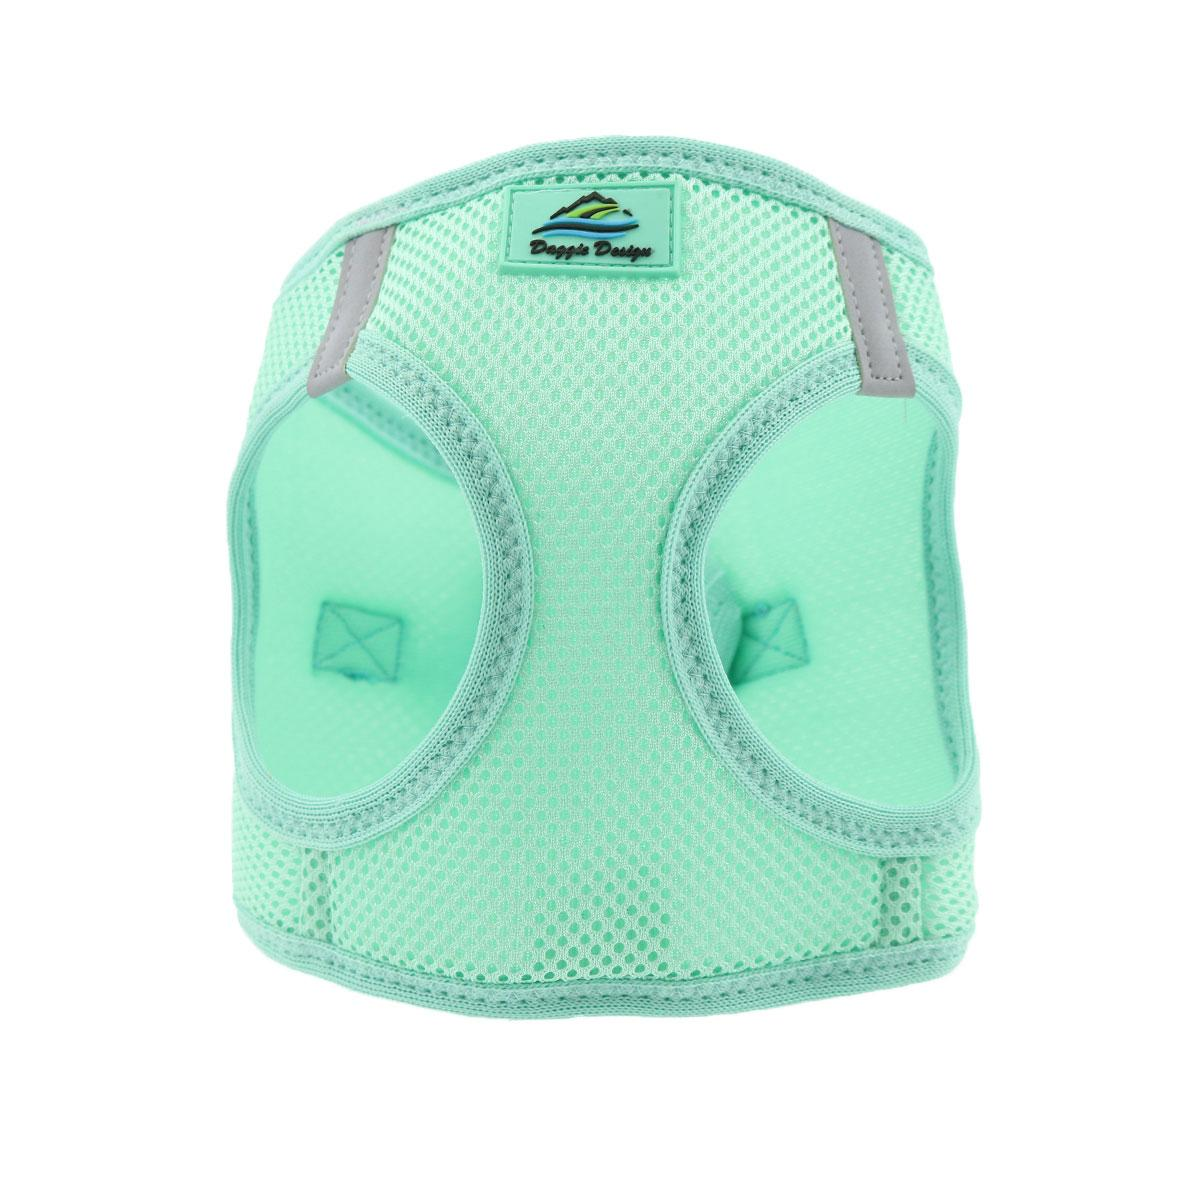 Doggie Design American River Choke-Free Dog Harness Solid, Teal, 3X-Large